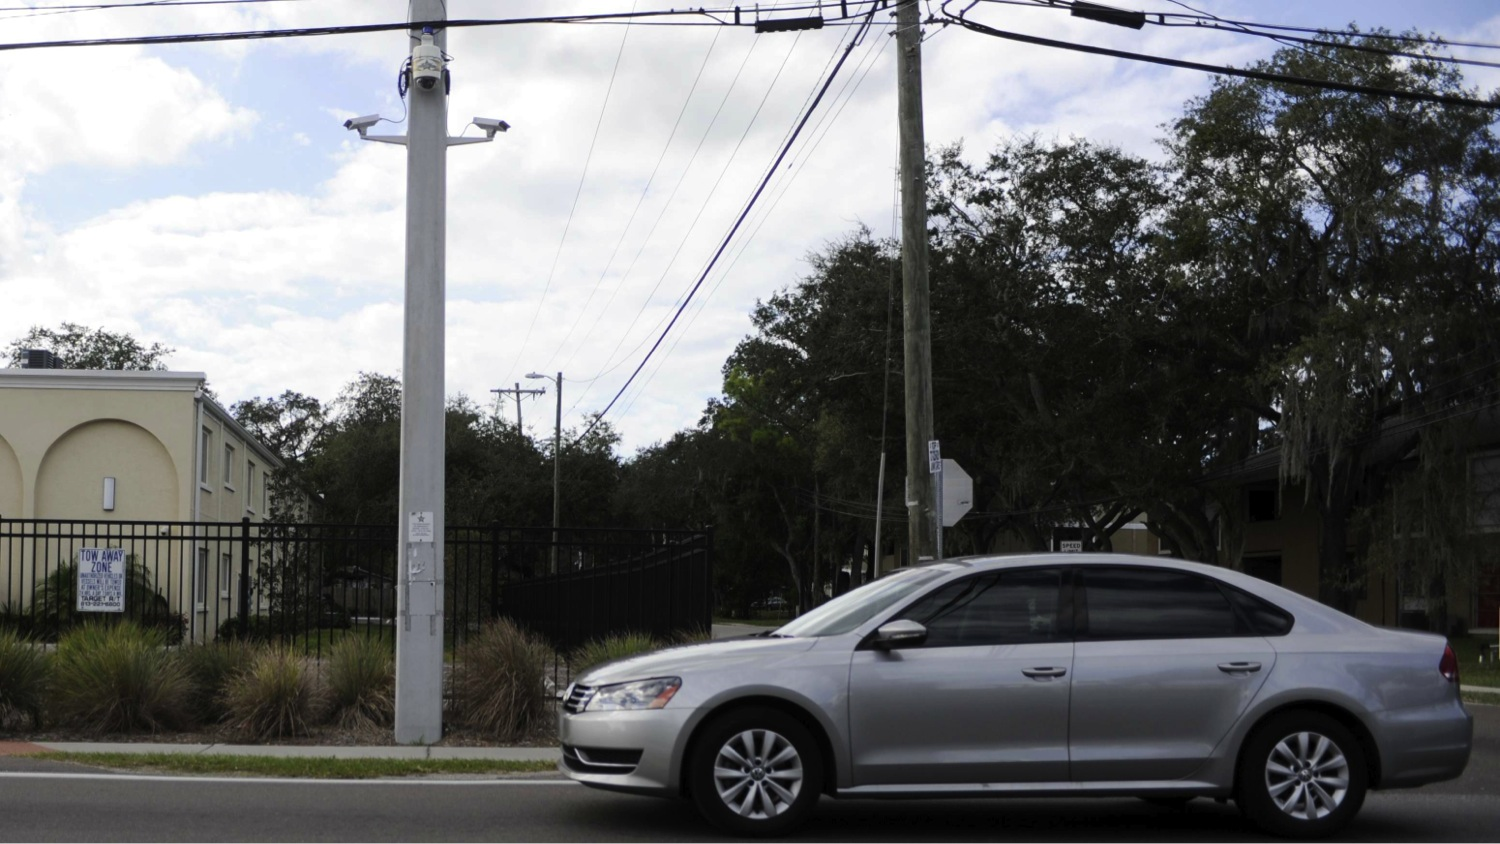 An automatic license plate reader, fixed on a pole. Photo: Jay Connor, Tampa Tribune